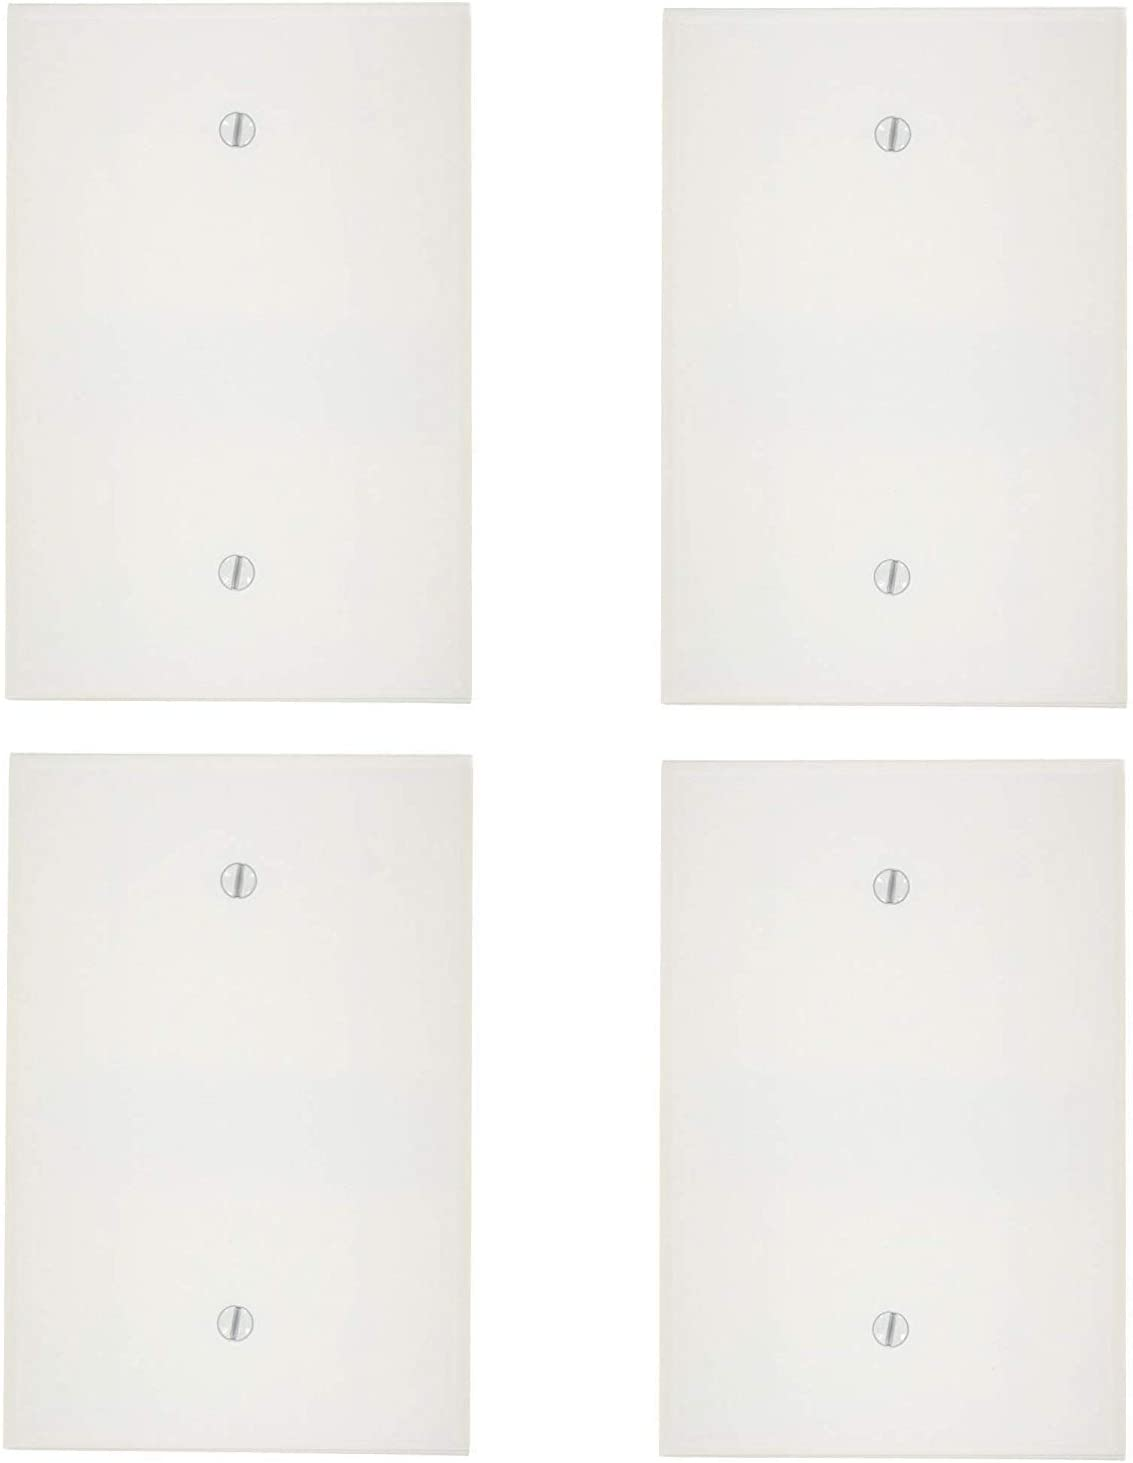 Leviton 88114 002-000 1-Blank Oversized Wall 1 Recommendation 5-1 New color Plate Gang